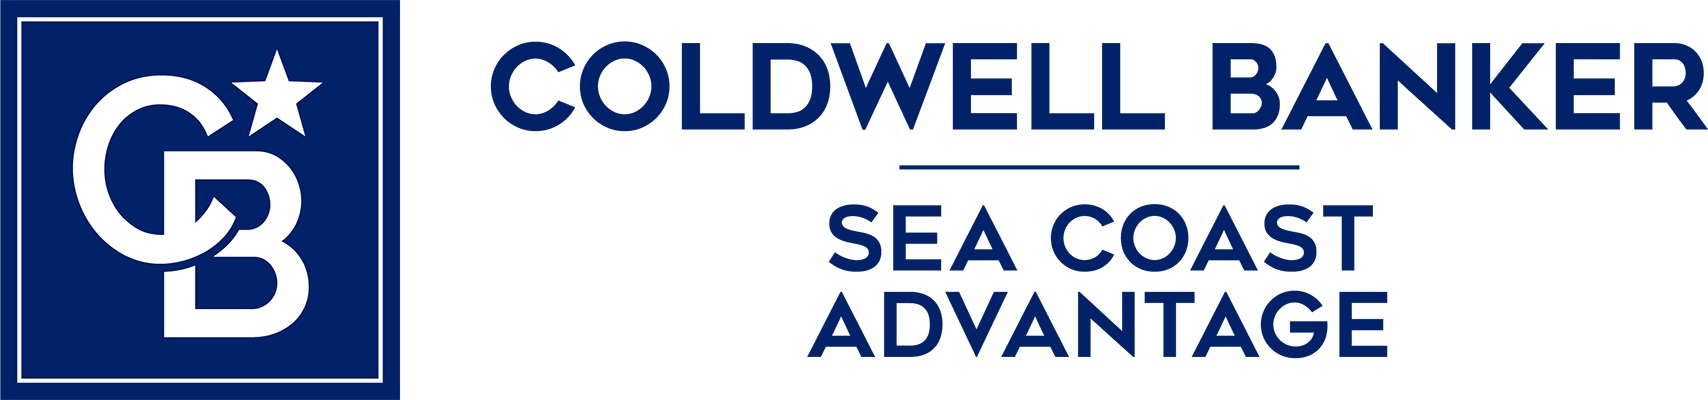 Jason Robbins - Coldwell Banker Sea Coast Advantage Realty Logo